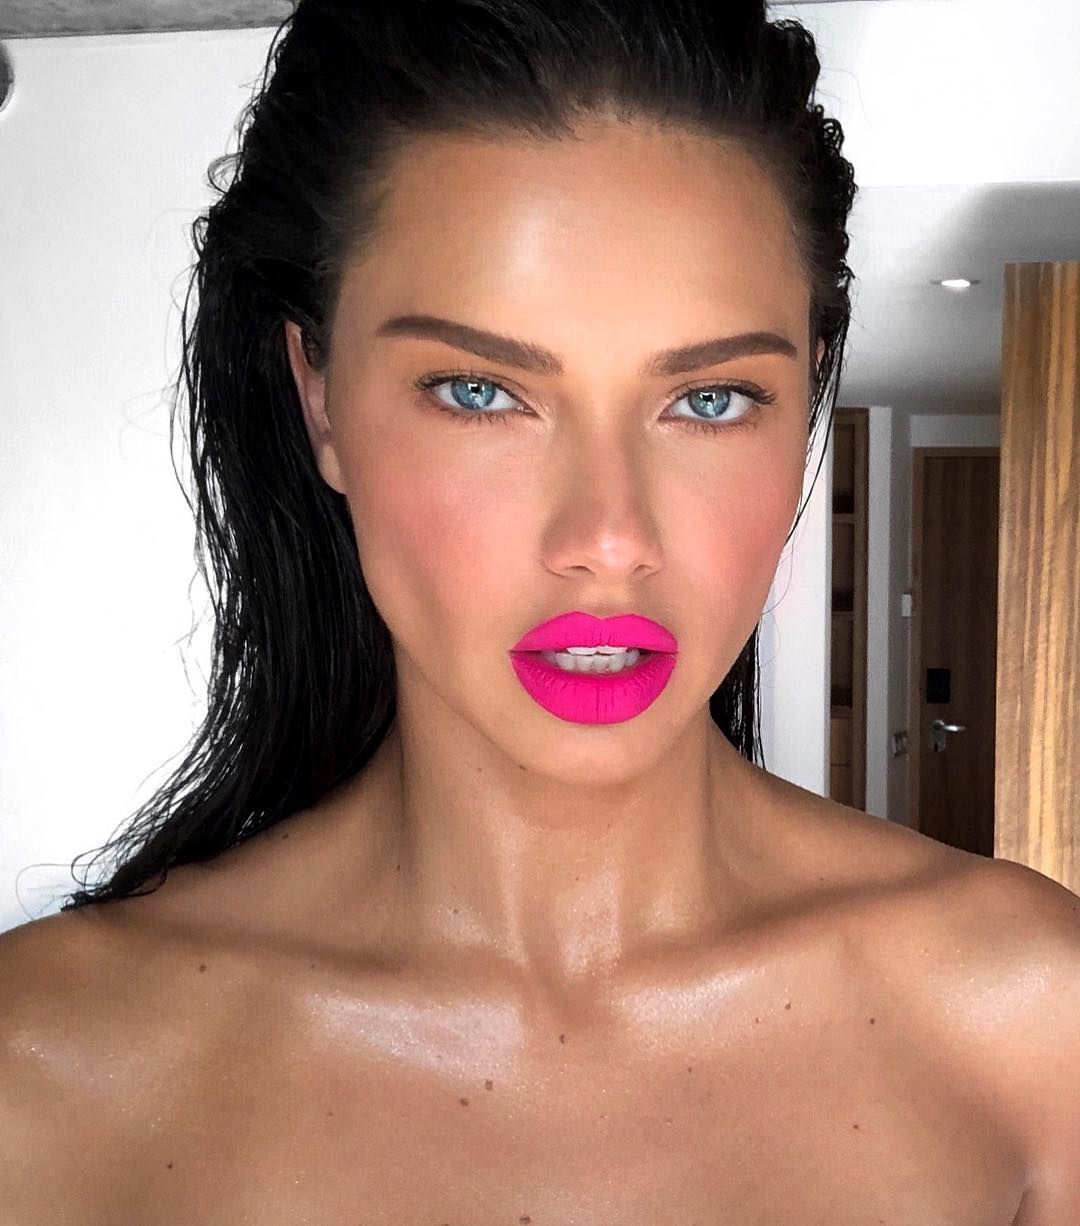 Fotos adriana lima naked (81 photo), Sexy, Fappening, Instagram, braless 2017